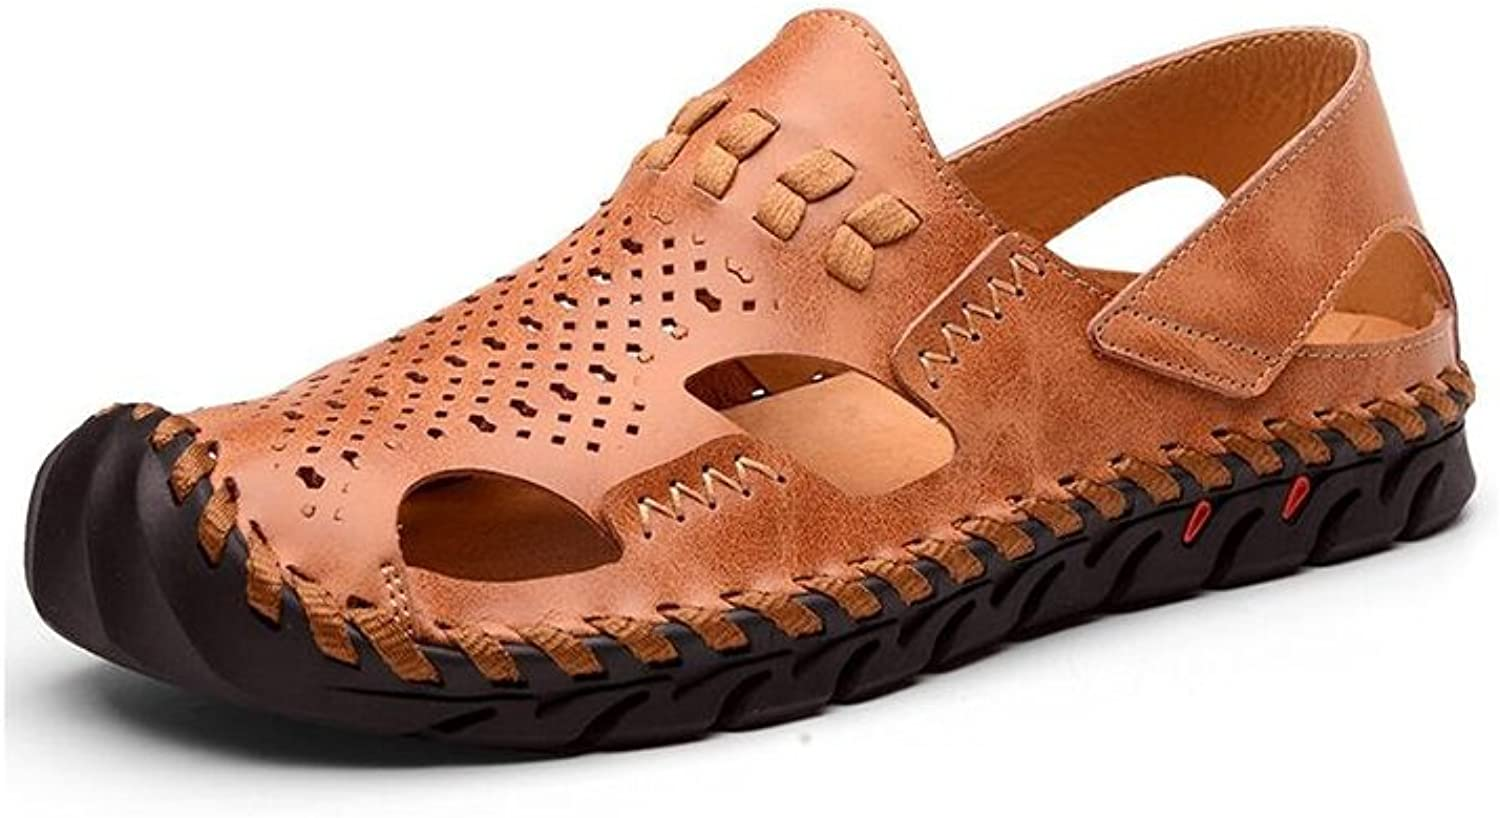 DALL Sports & Outdoor Sandals Ly-847 Comfortable And Breathable Men's shoes Flat Sandals Slippers Beach shoes Summer Season Outdoor Leisure (color   Brown, Size   EU 41 UK 7 CN 41)